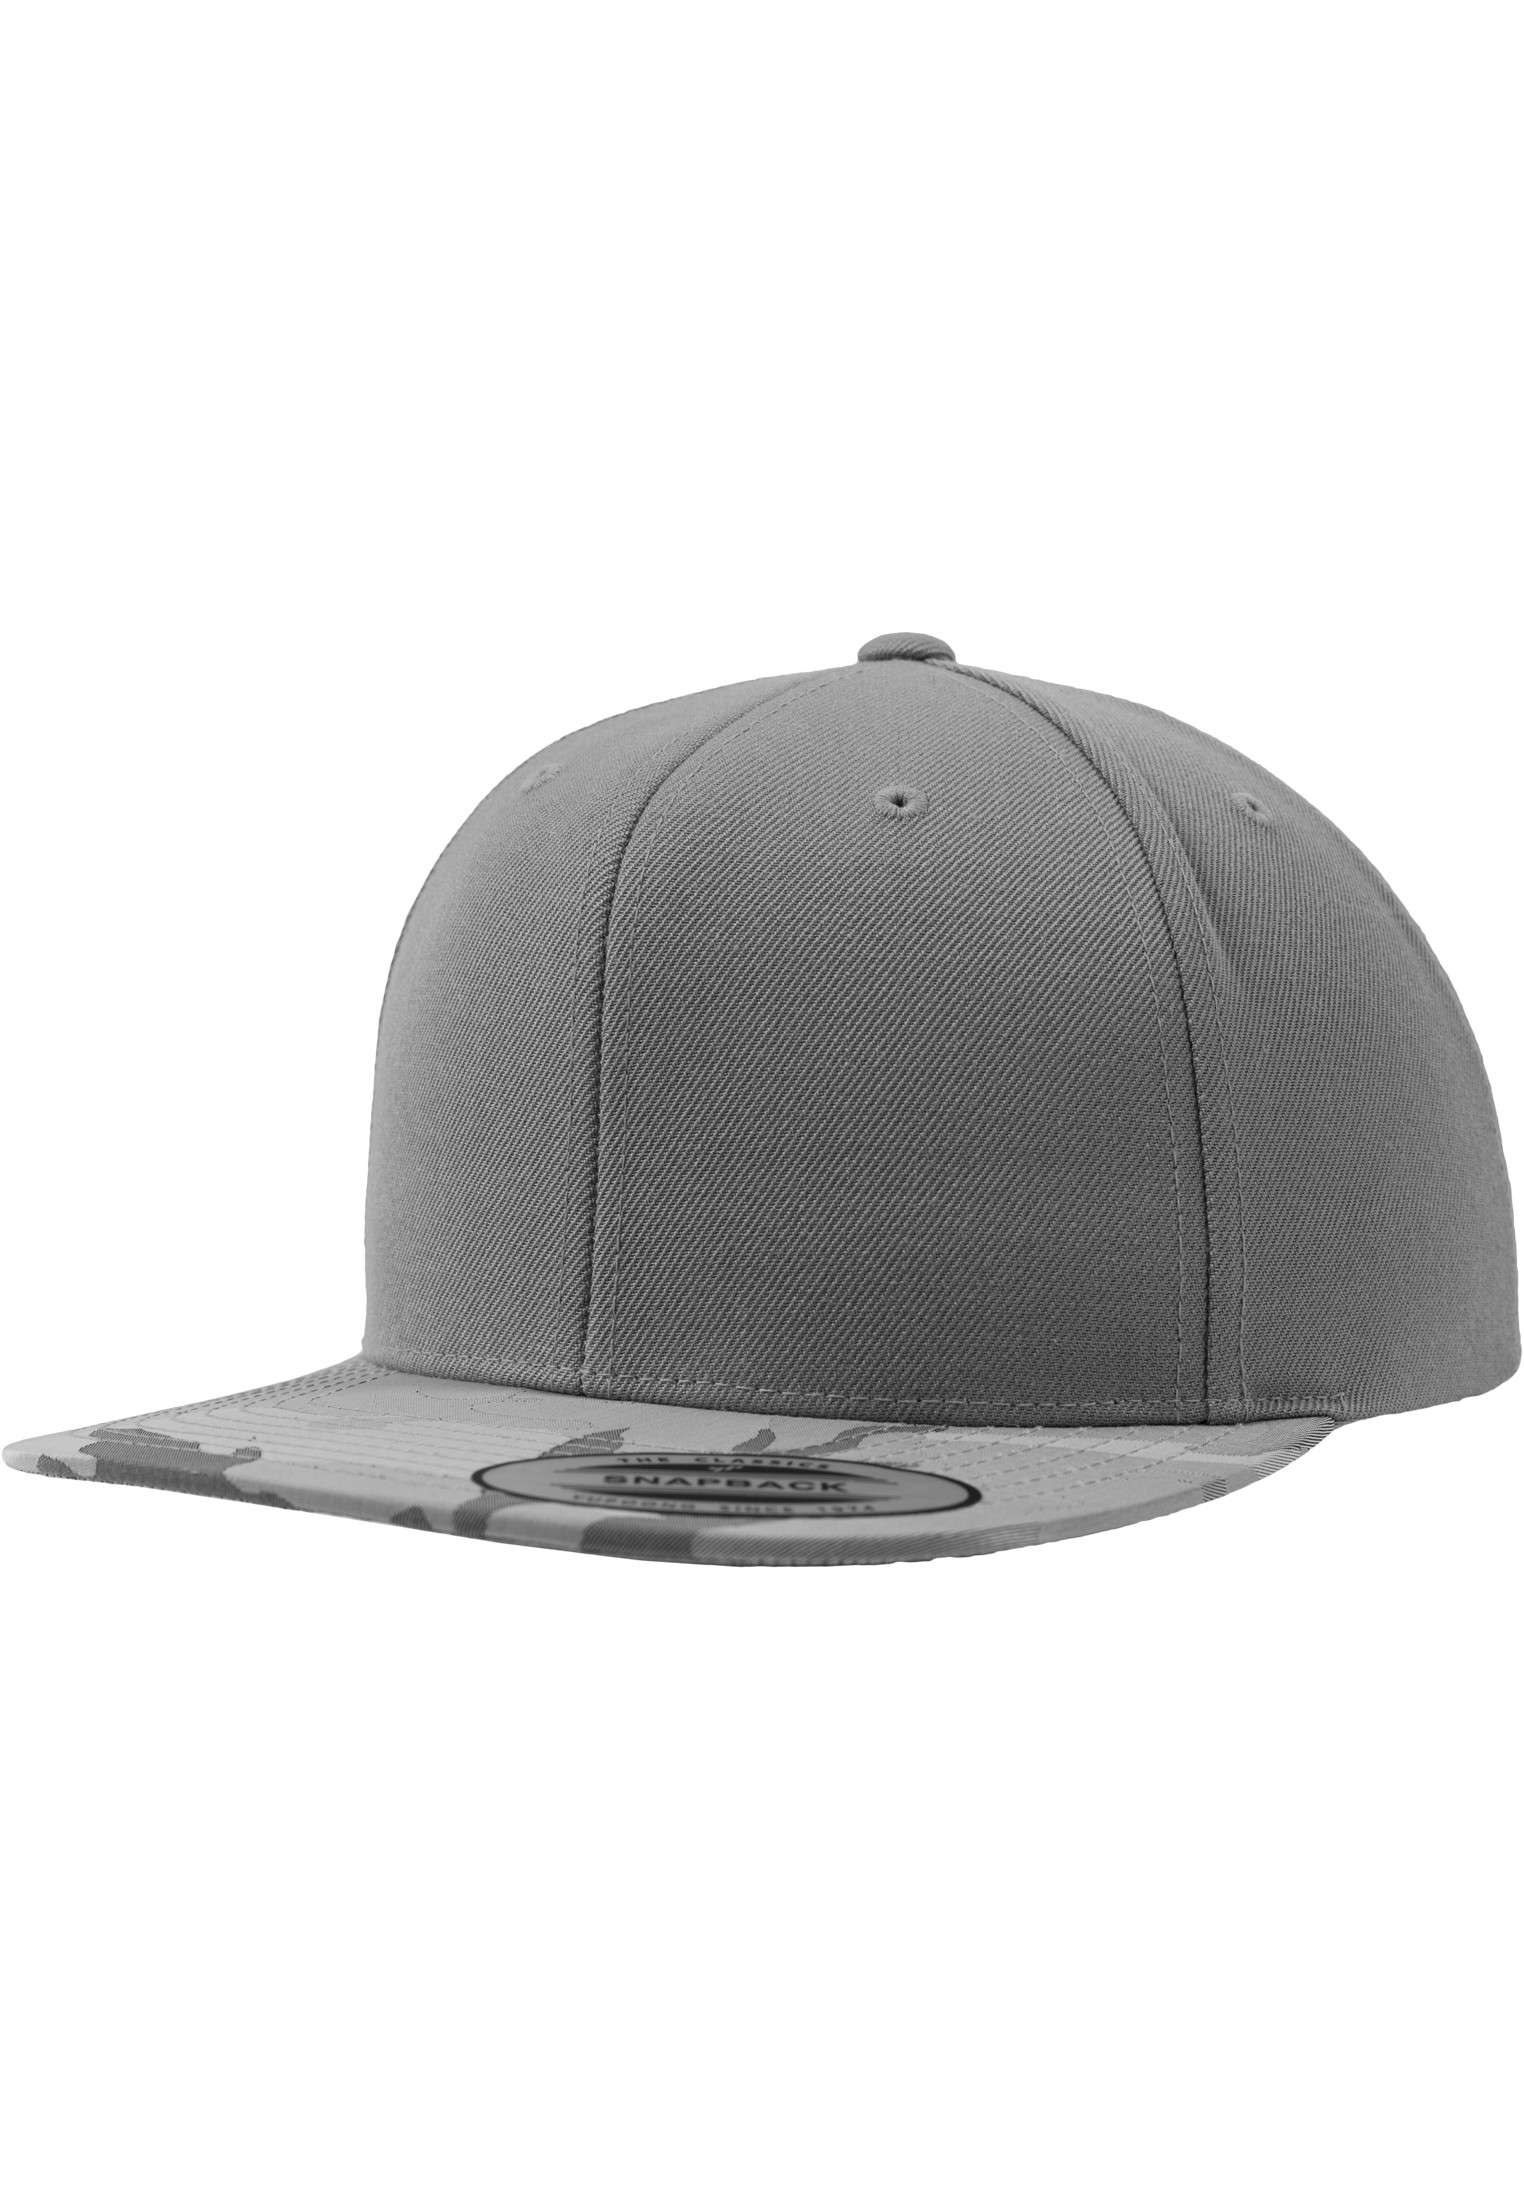 snapback cap in camo silber online mit eigenen motiven besticken. Black Bedroom Furniture Sets. Home Design Ideas